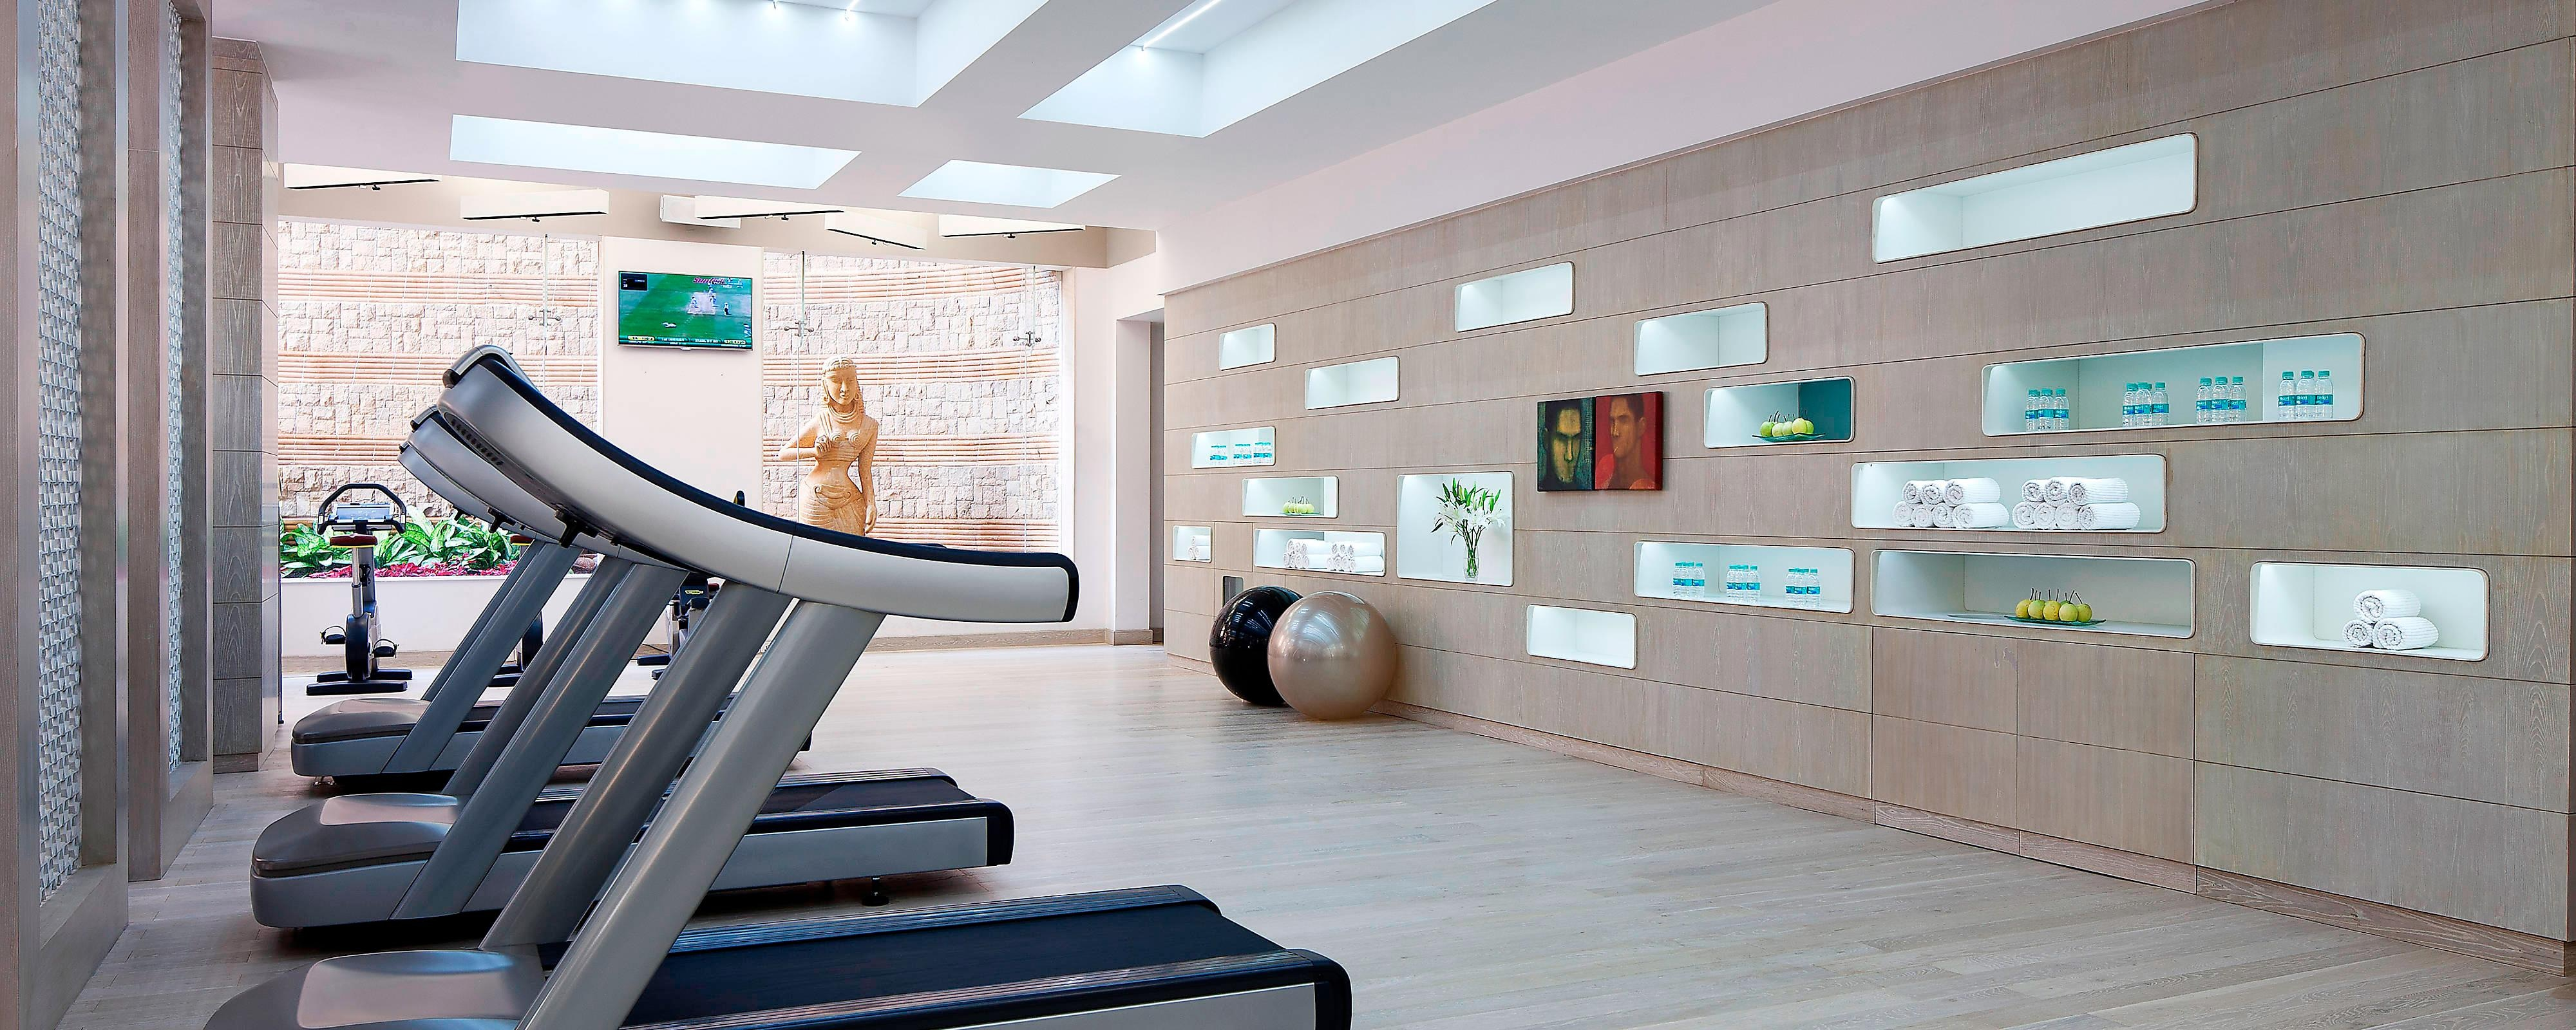 Mumbai hotels with fitness centre